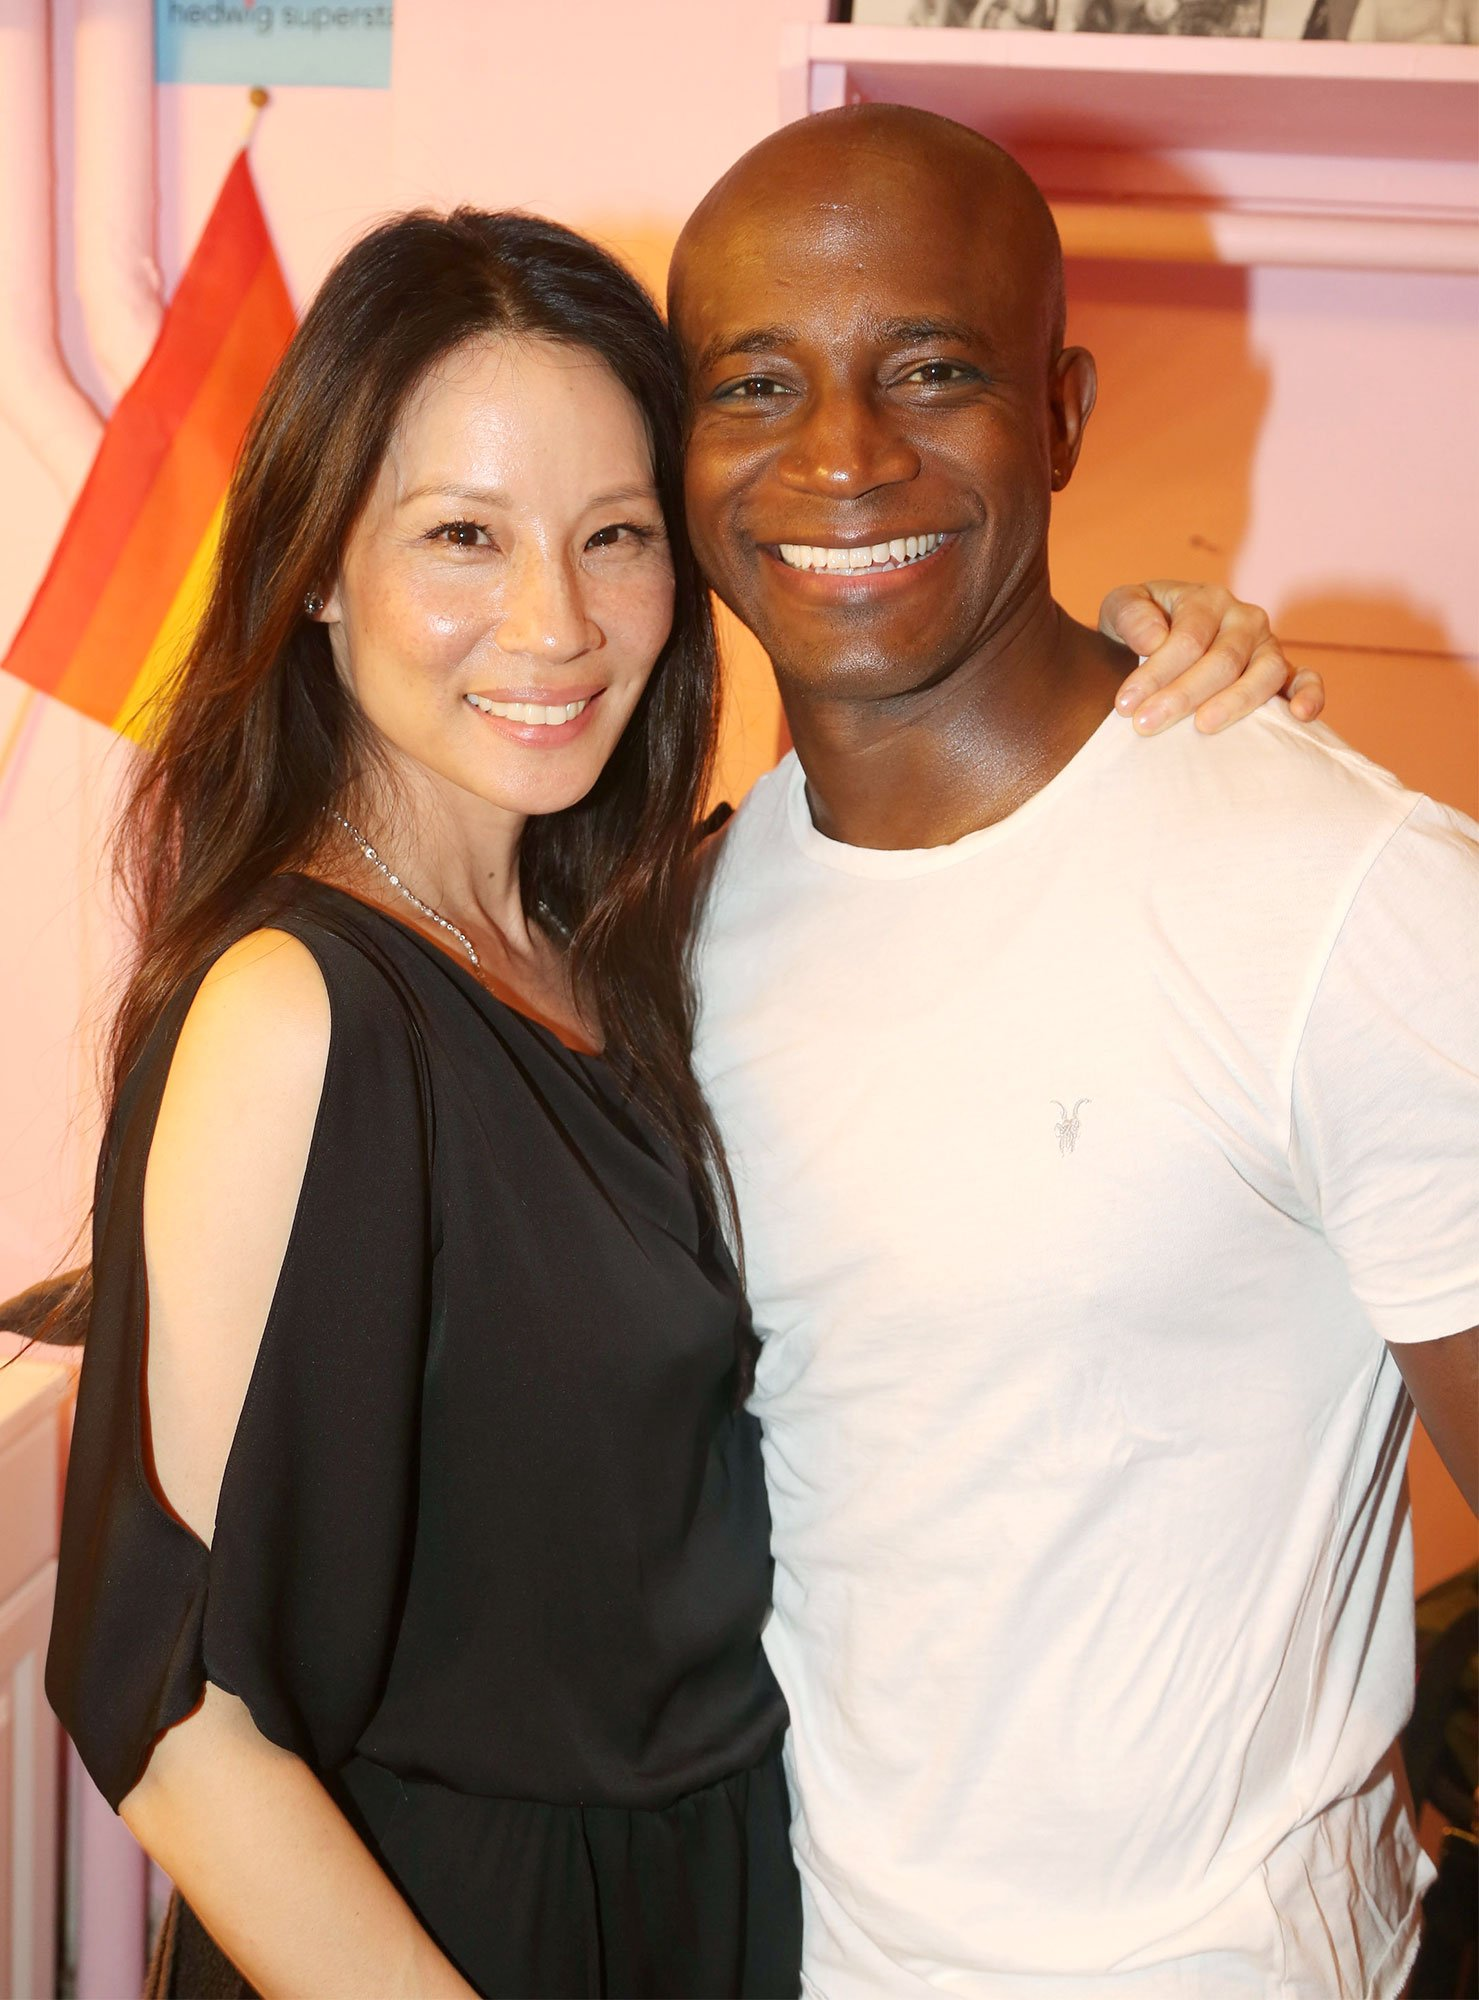 Taye Diggs Says Lucy Liu Was His Celebrity Hall Pass